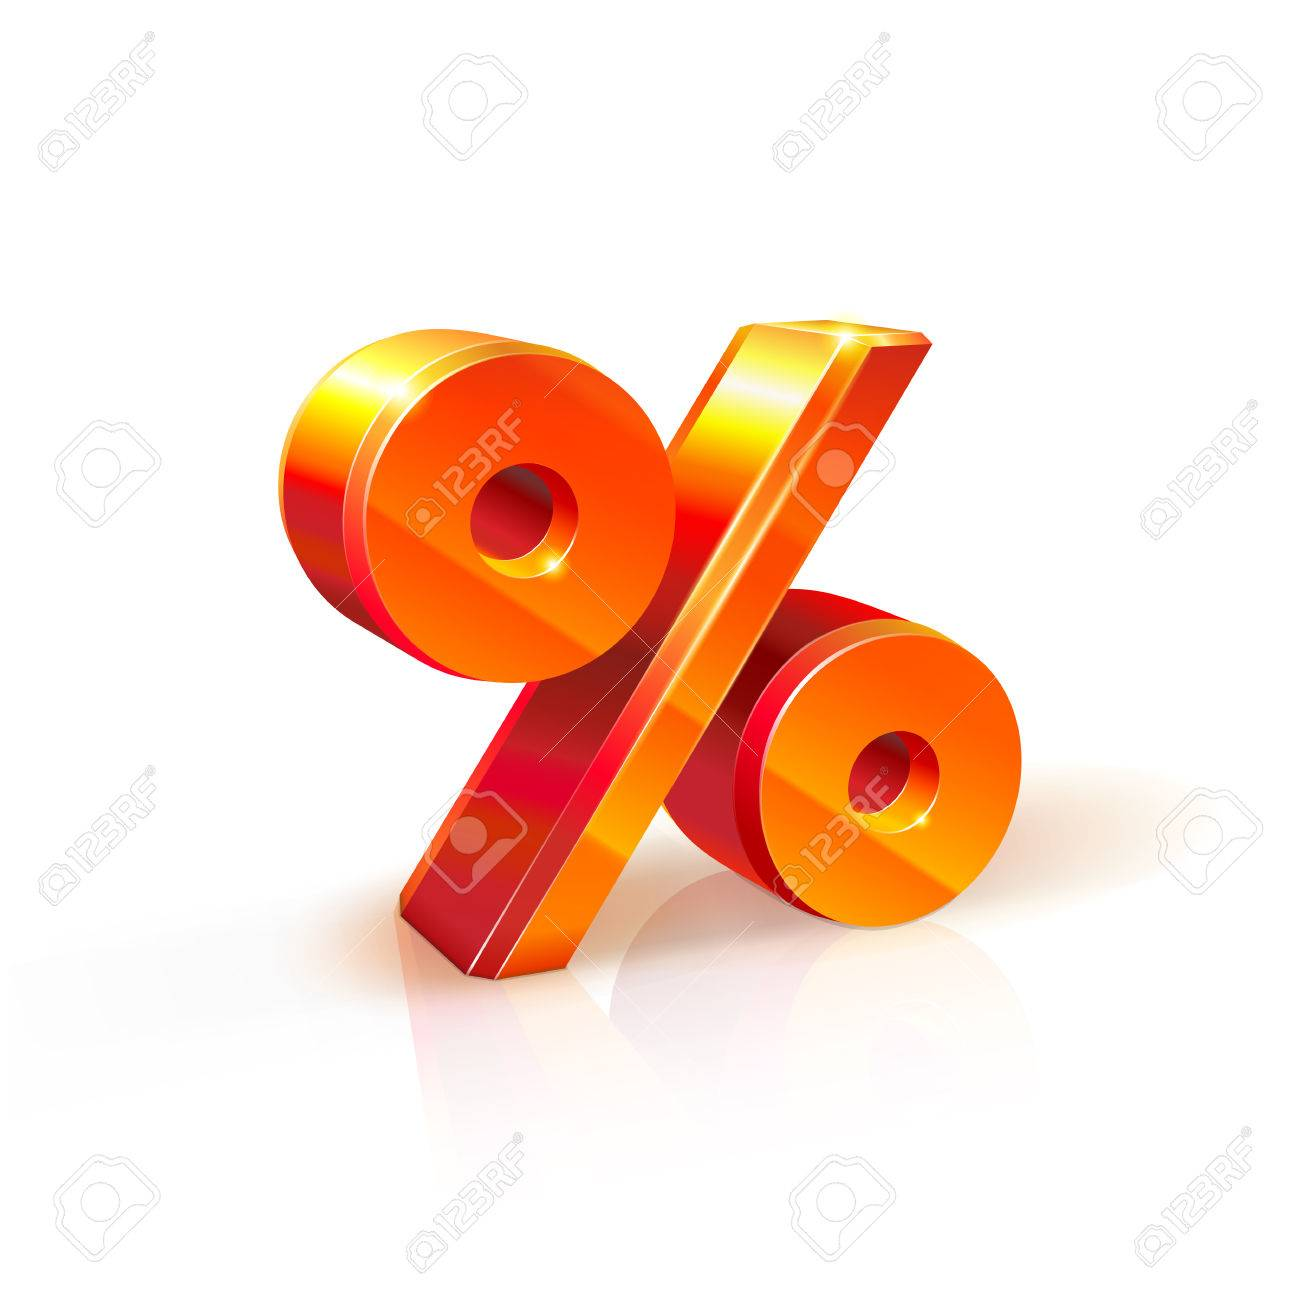 3d orange-red realistic volumetric percent sign image. Isolated on white background. It used to refer to discounts, sales, advertising purposes - 57253032